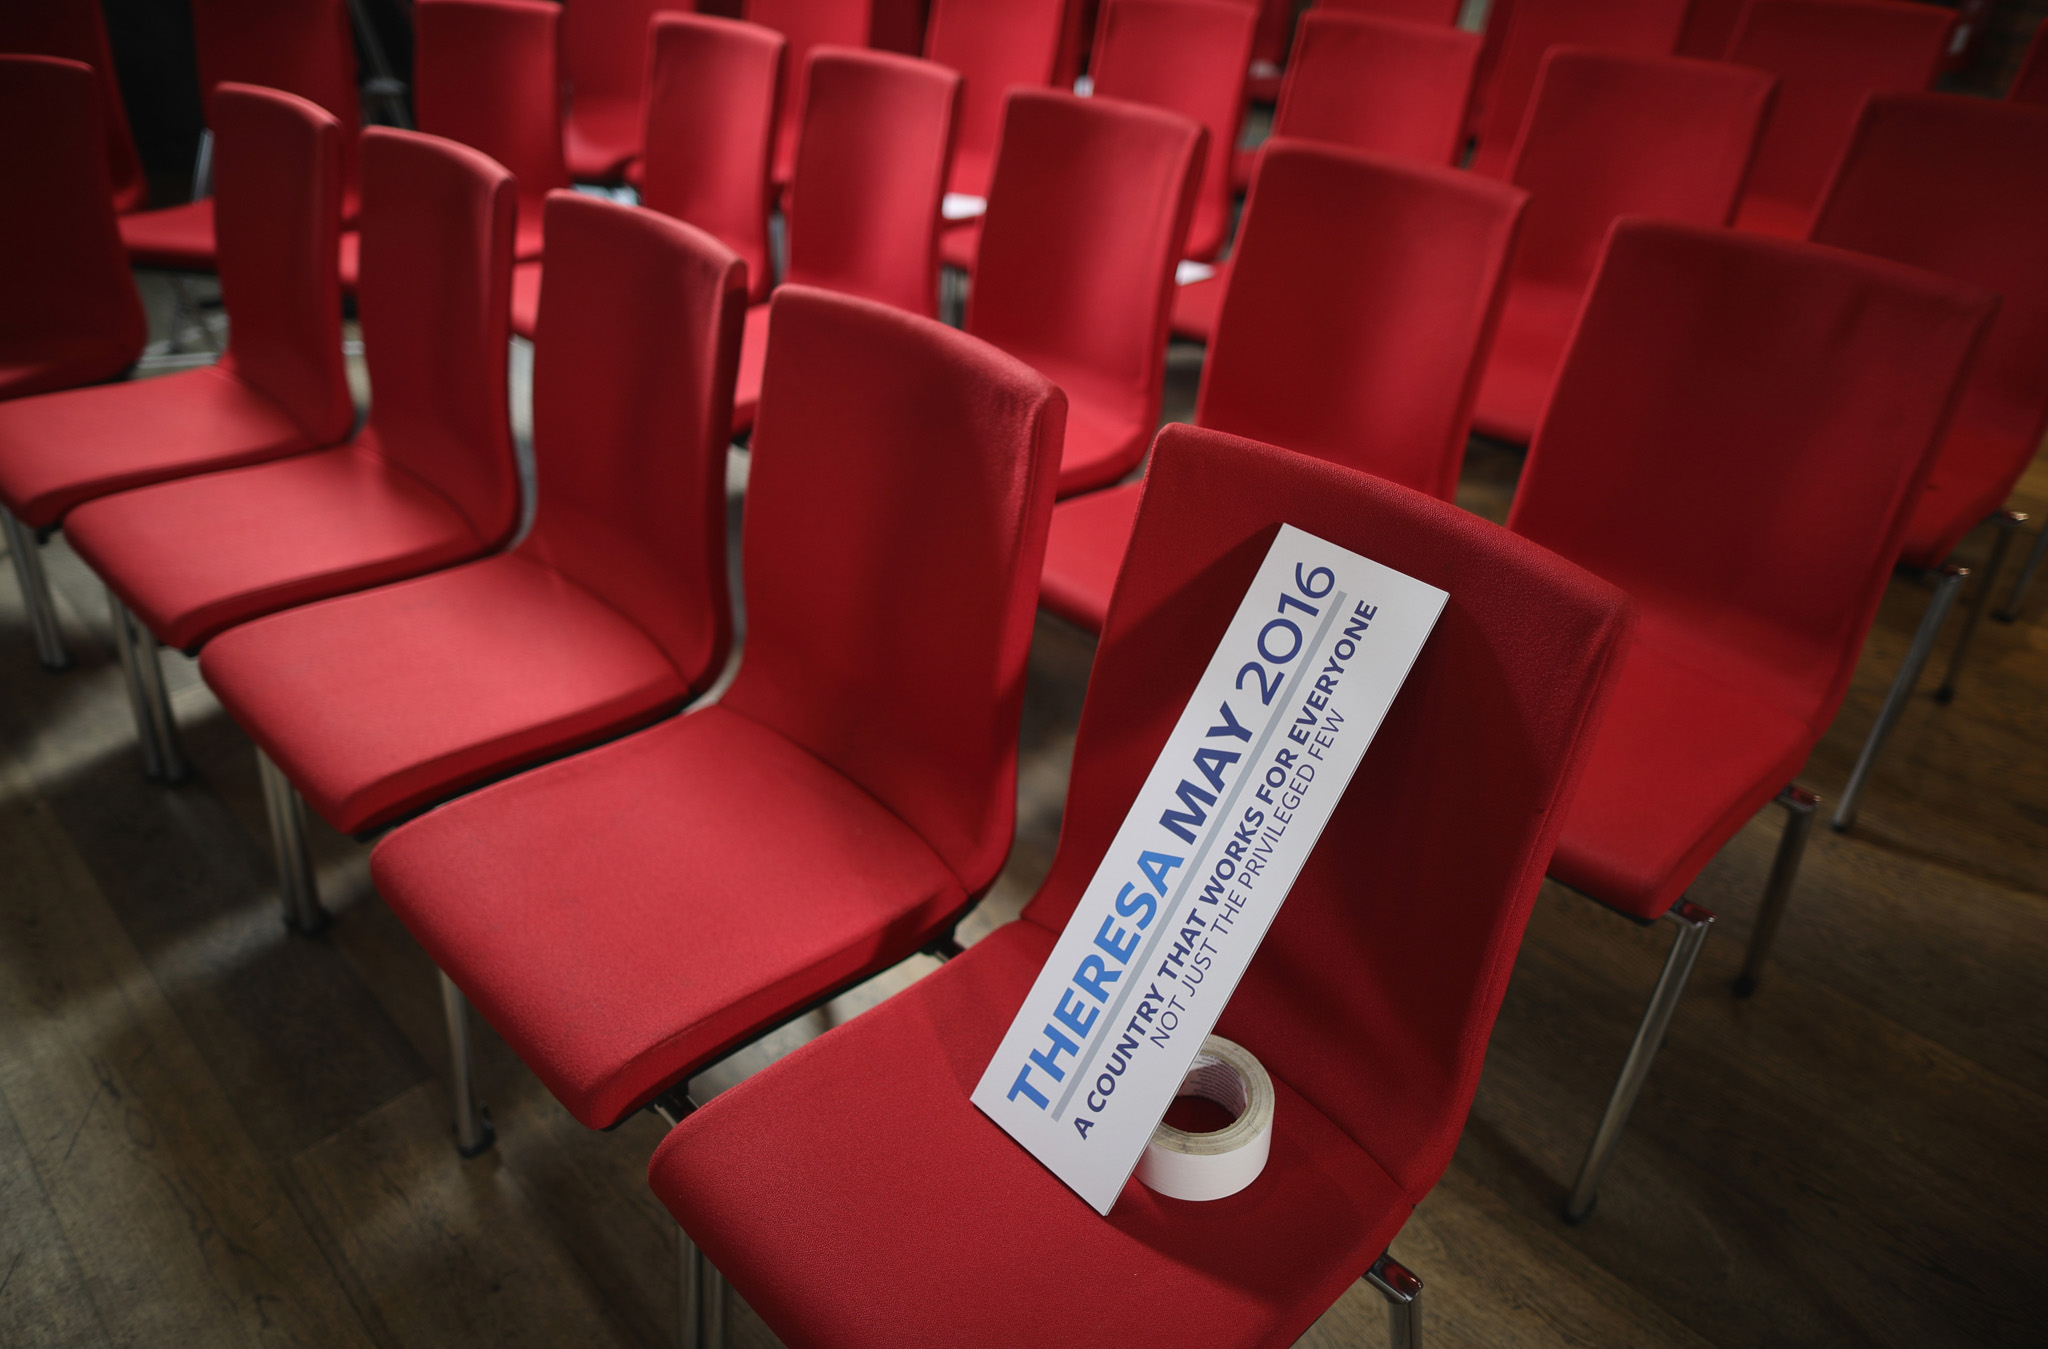 Preparations are seen ahead of British Home Secretary Theresa May launching her Conservative party leadership campaign at the IET events venue on July 11, 2016 in Birmingham, England. Theresa May MP and Andrea Leadsom MP are the last two remaining contenders in the leadership race to be prime minister of the United Kingdom after the resignation of David Cameron.(Photo by Christopher Furlong